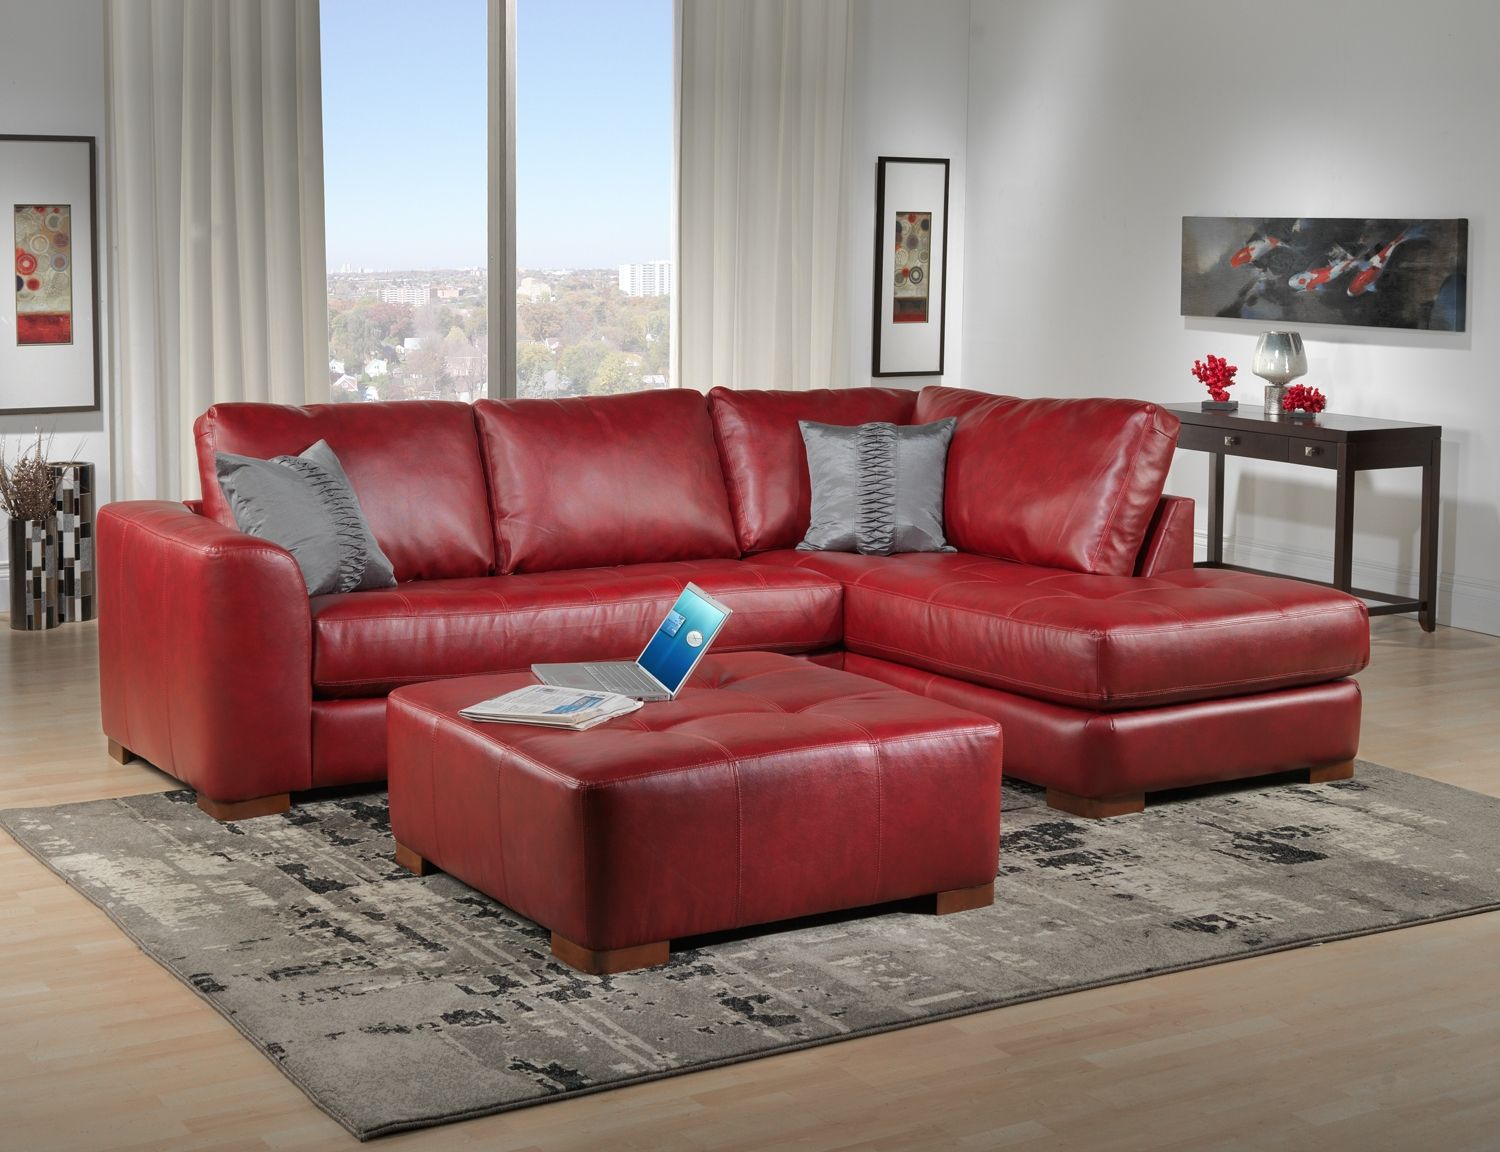 25+ best red leather couches ideas on pinterest | red leather